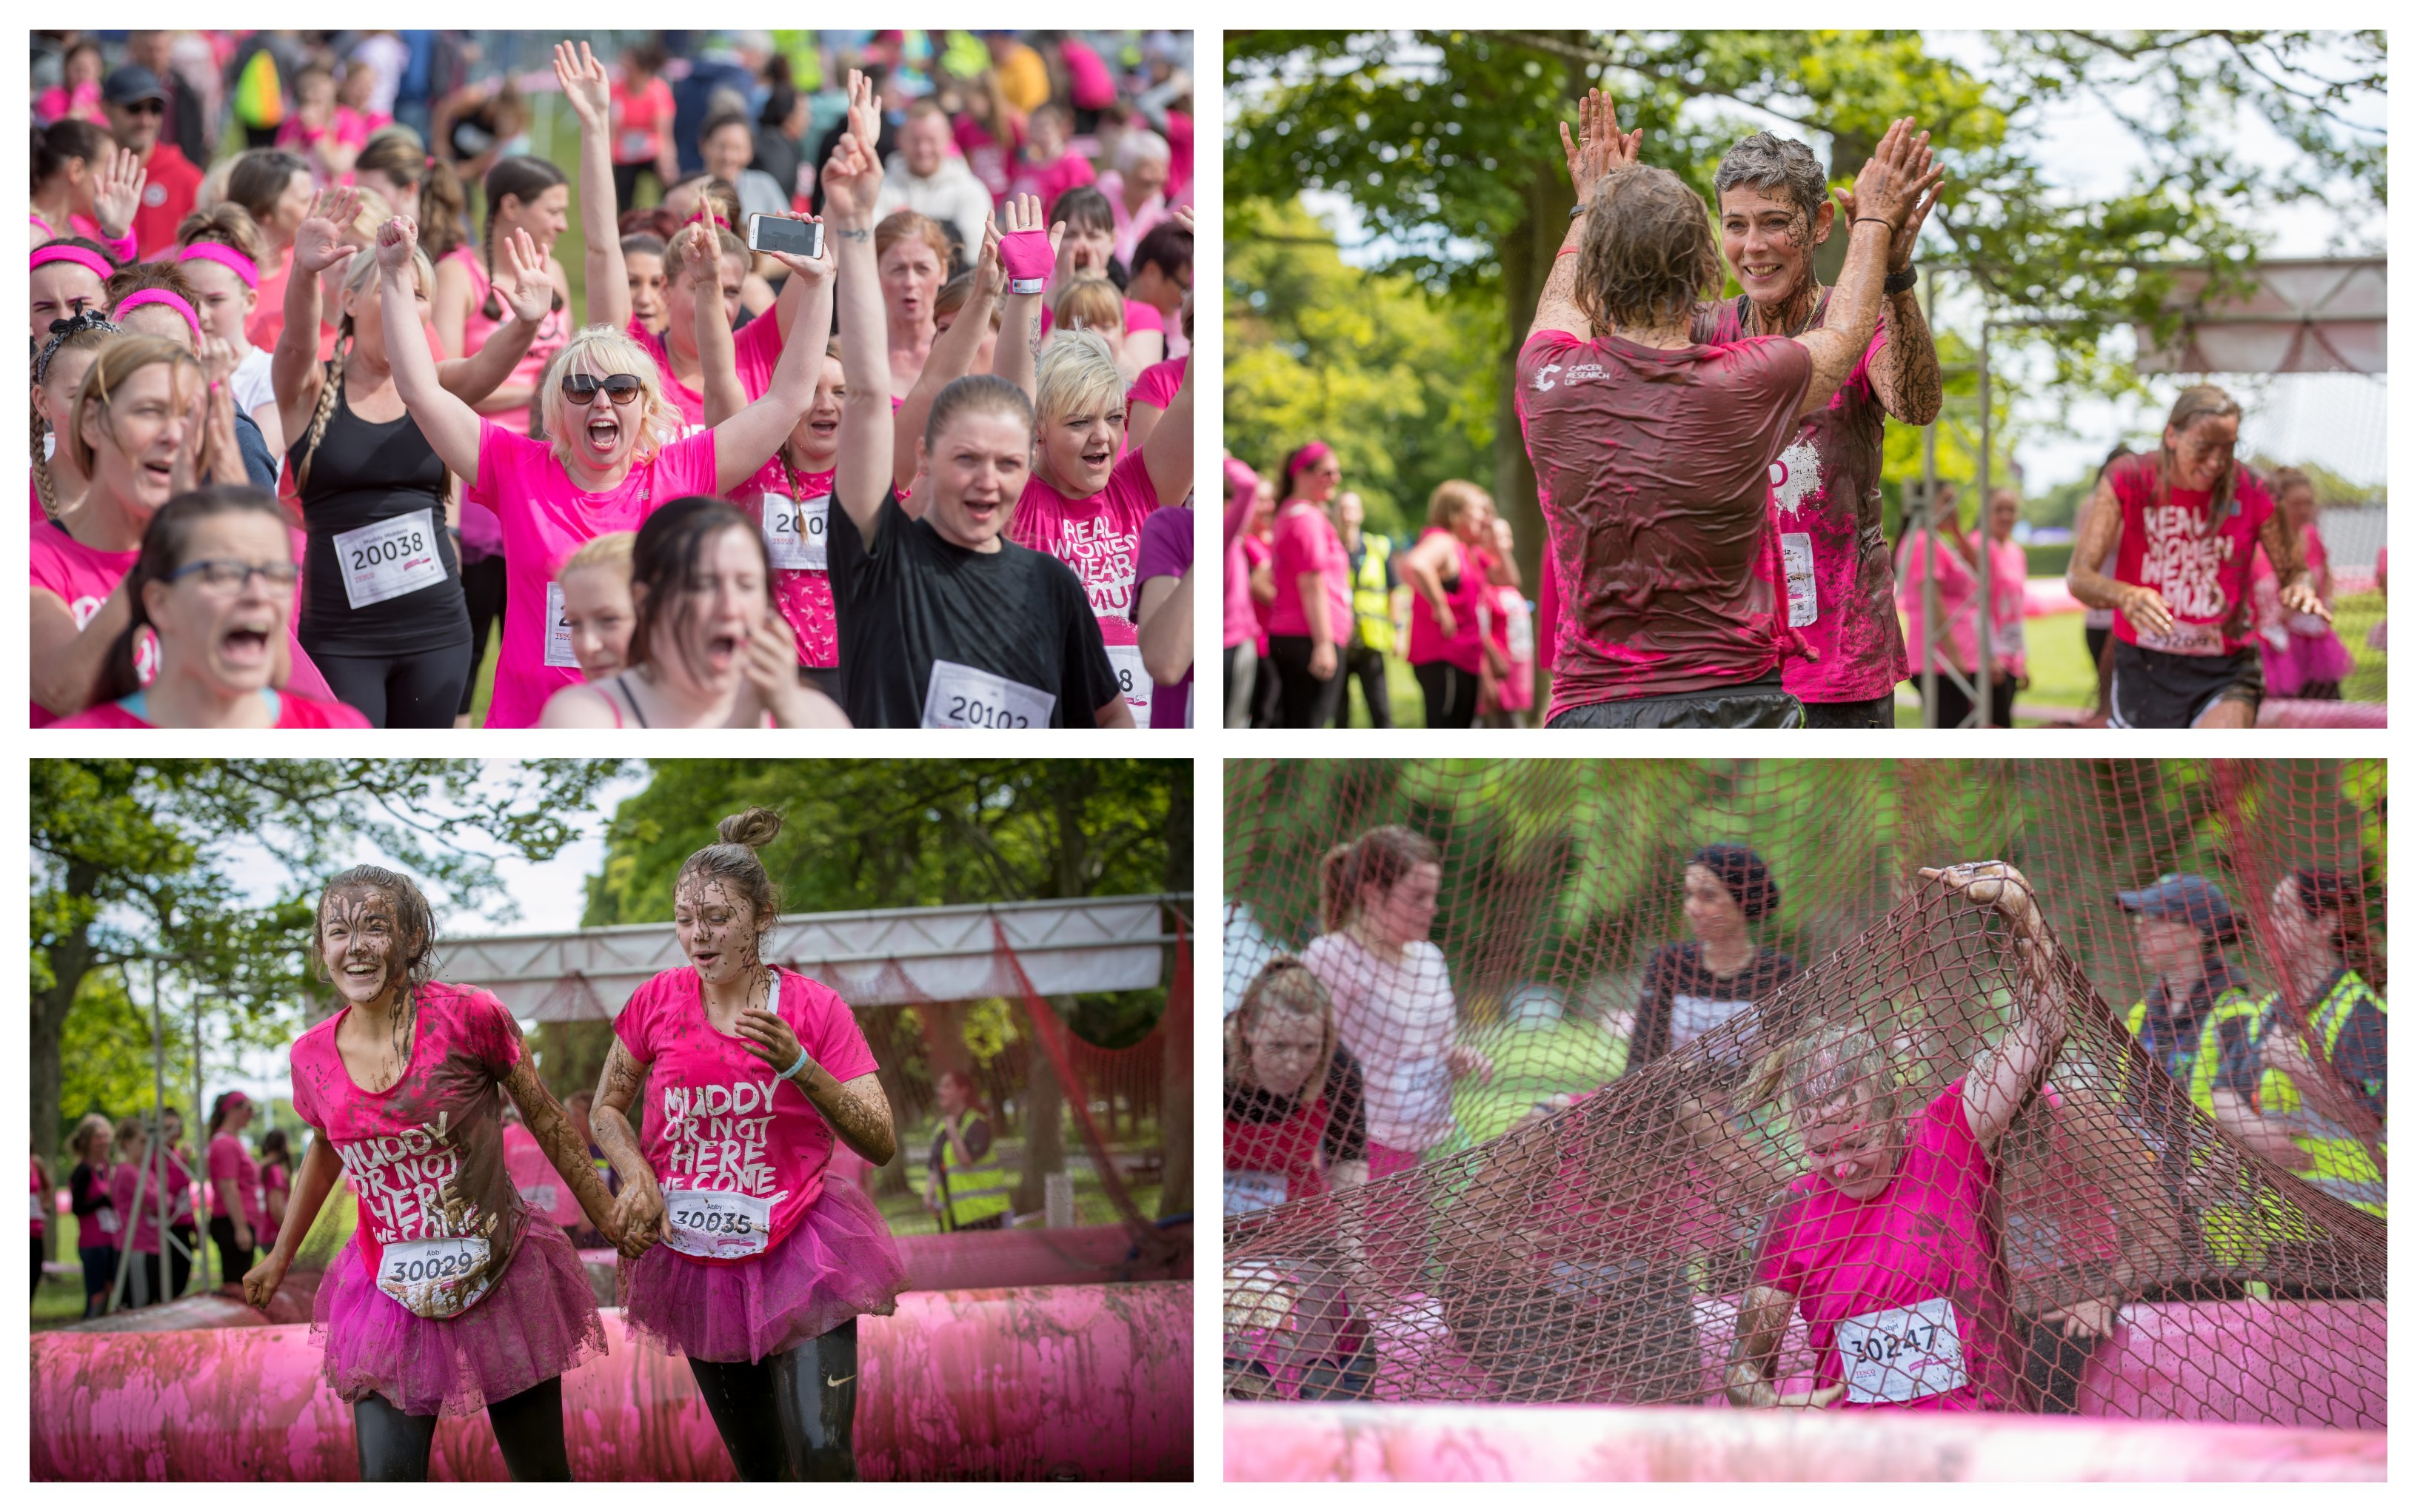 The Pretty Muddy run is part of the Race for Life.